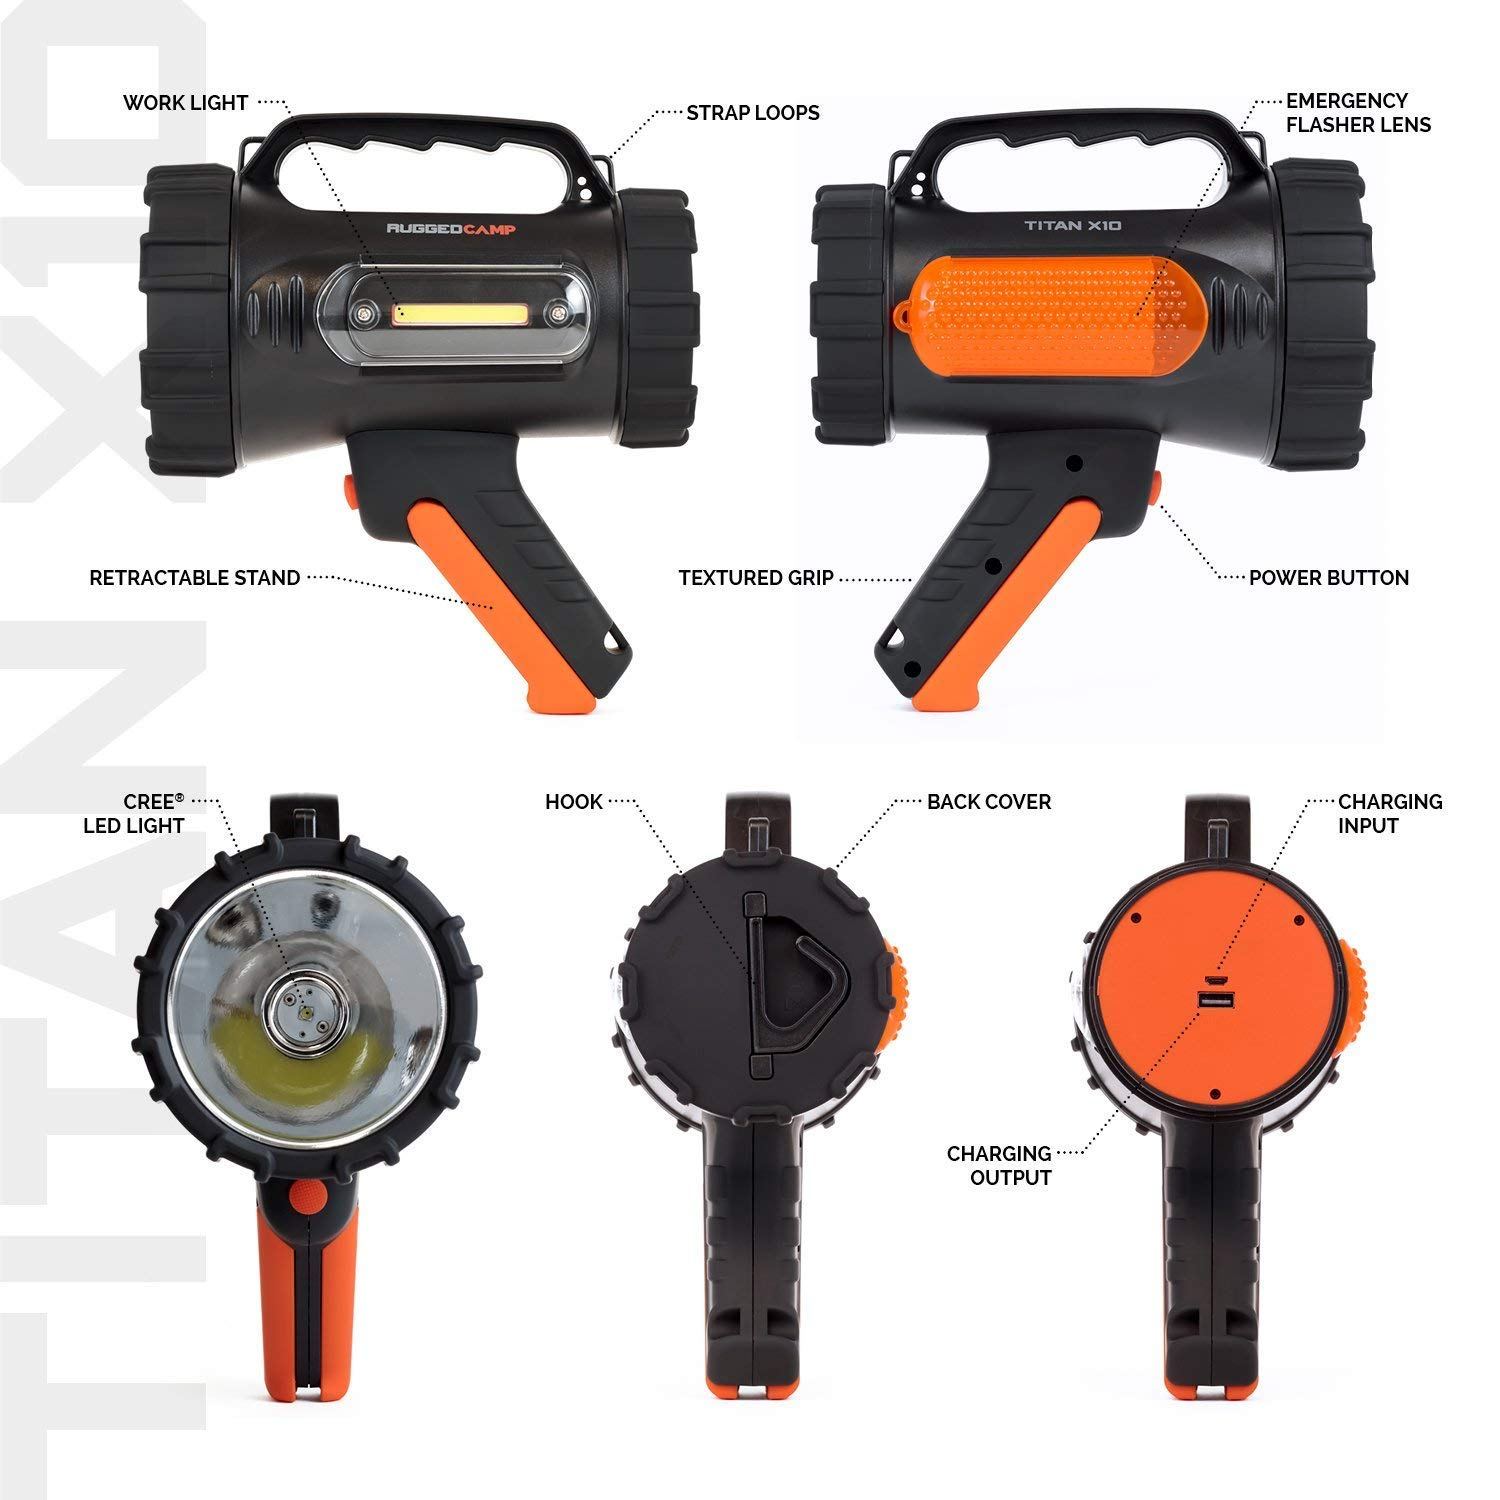 Rugged Camp Titan X10 Rechargeable Spotlight - 1000 Lumens - High Powered 10W LED Bright Flashlight - Work Light & Tripod - Perfect for Camping, Hiking, Hunting, Emergencies & Outdoors (Black/Orange) by Rugged Camp (Image #9)